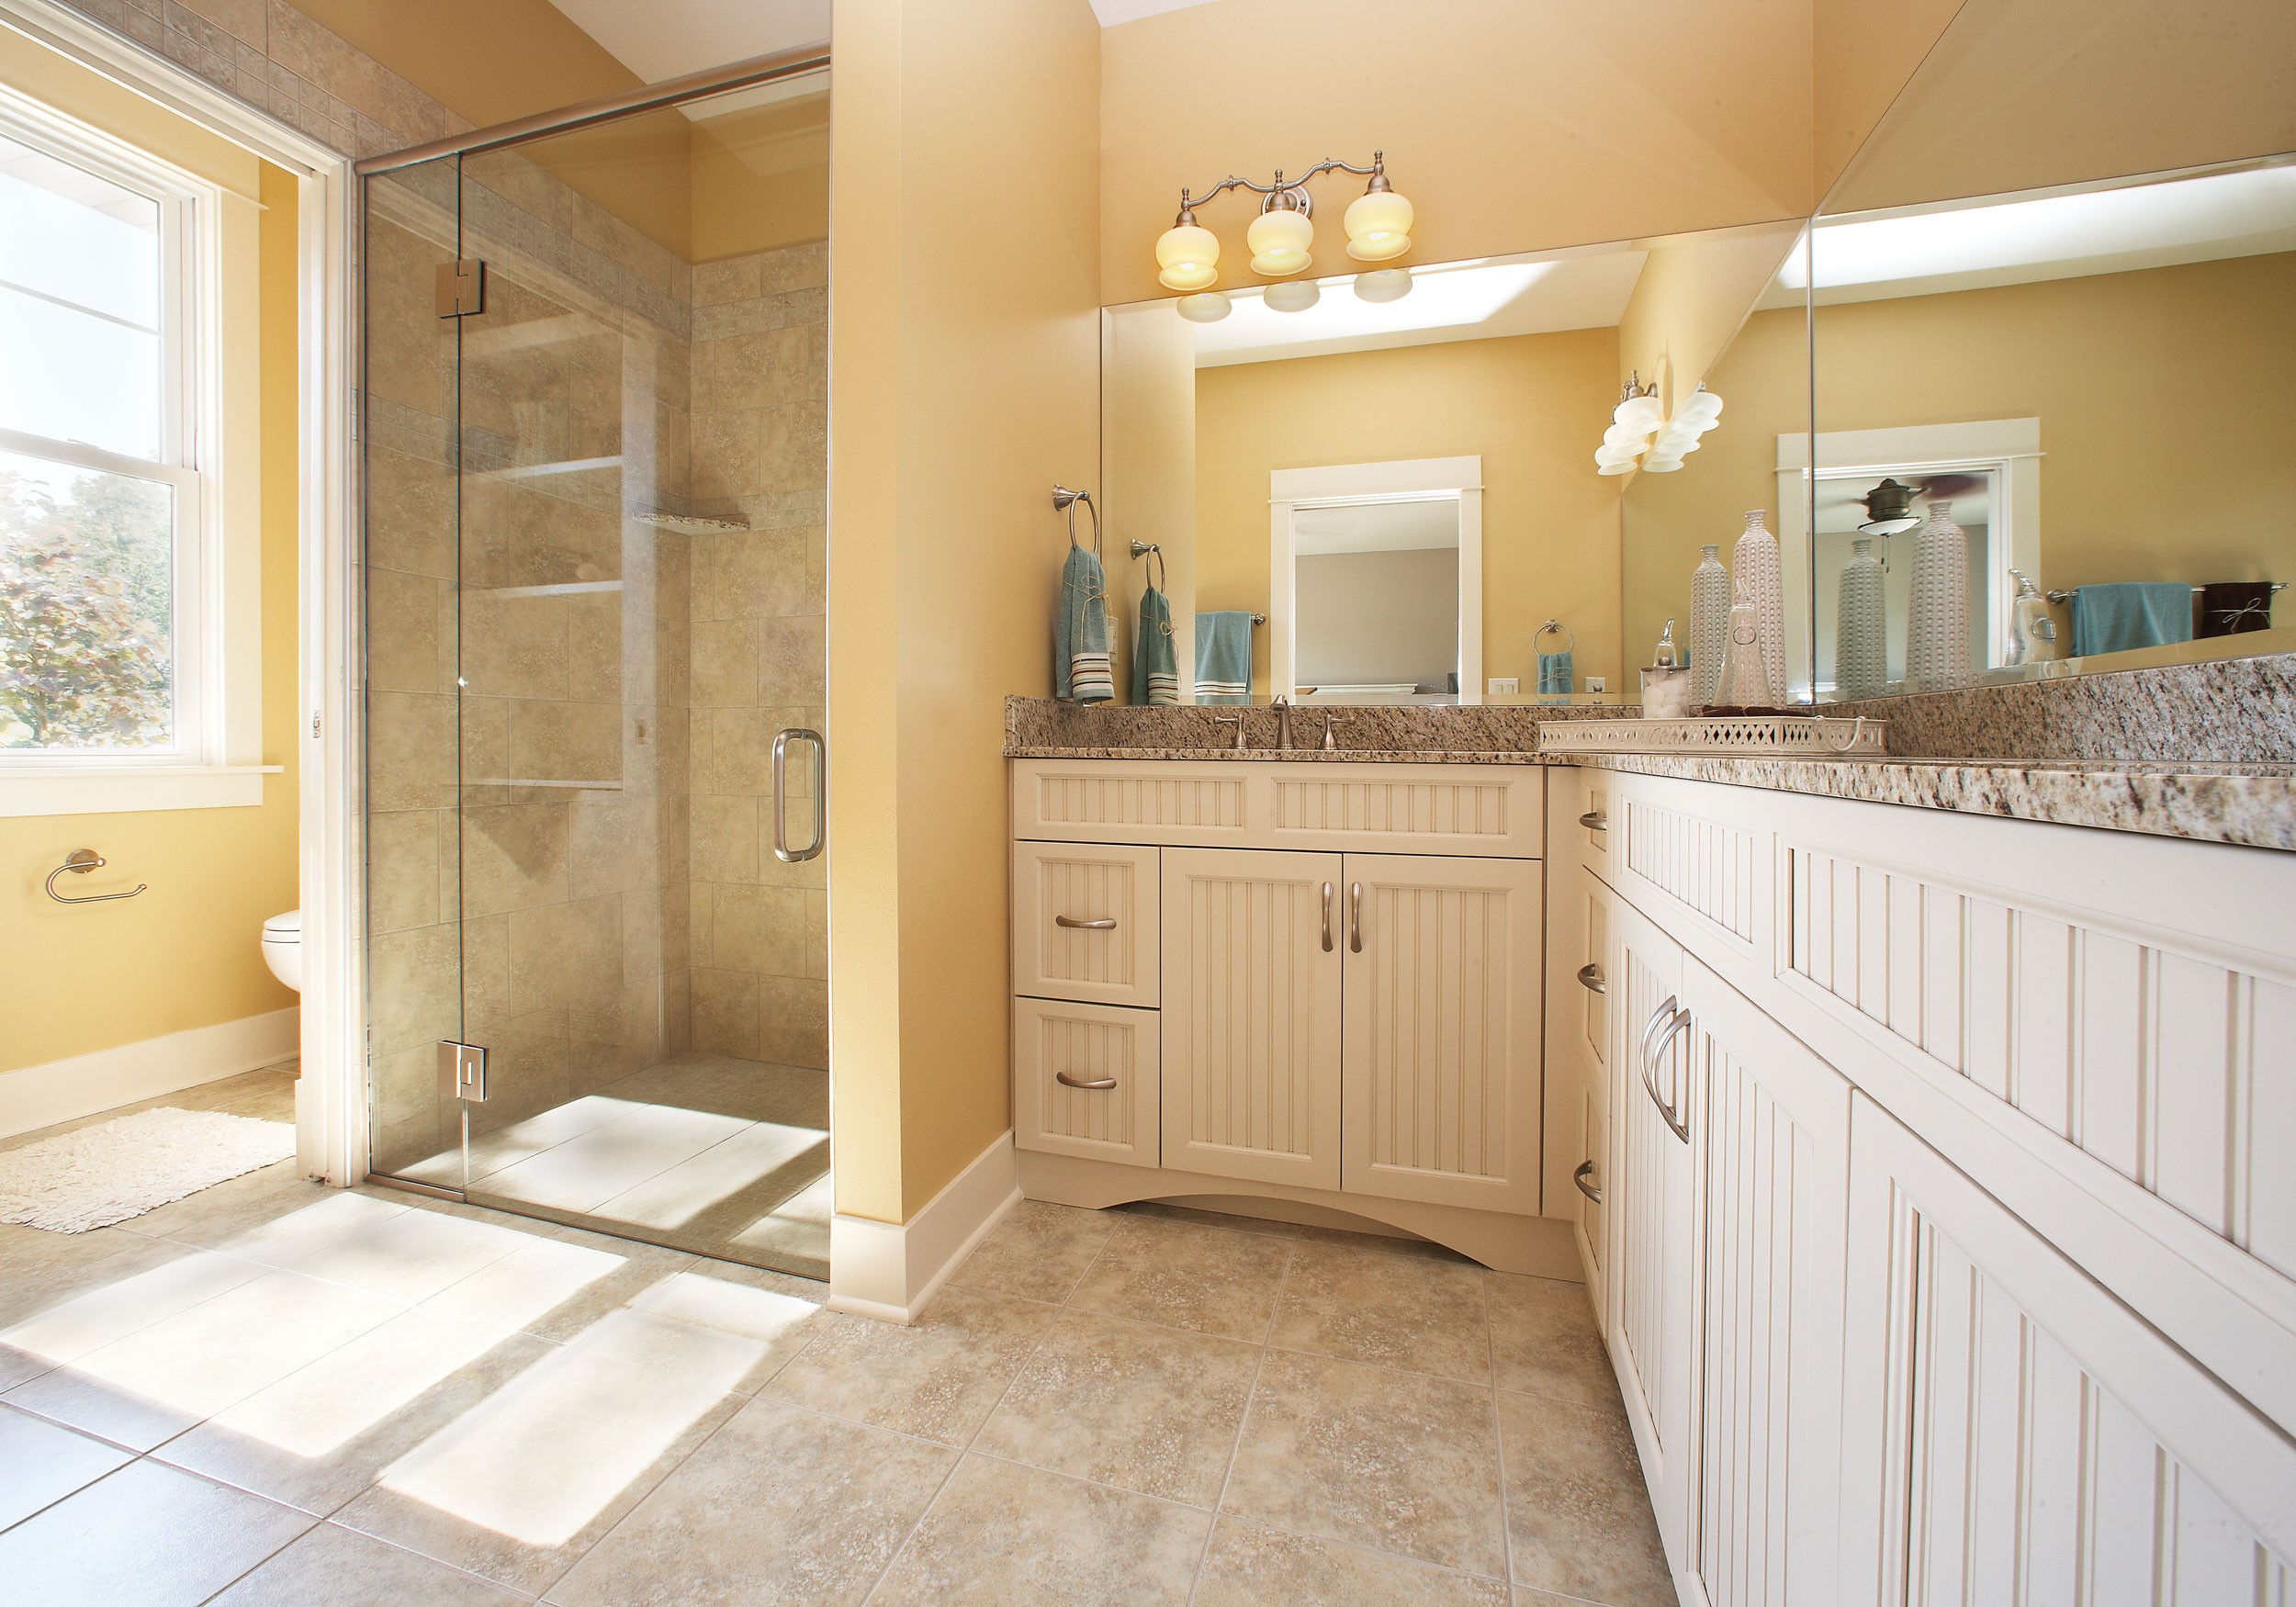 custom kitchen bathroom cabinets company in phoenix az cabinet maker - Bathroom Cabinets Kzn